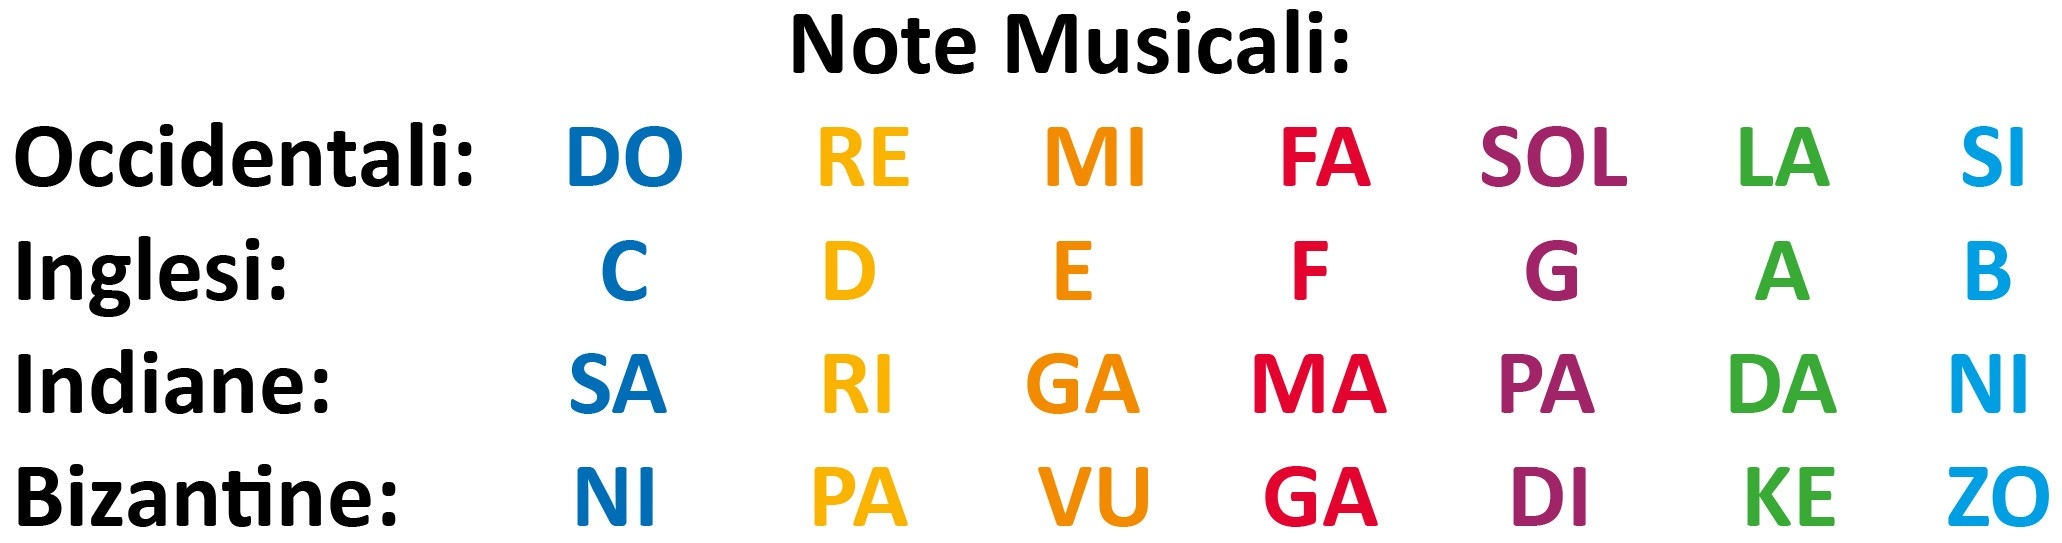 Note Musicali Nome